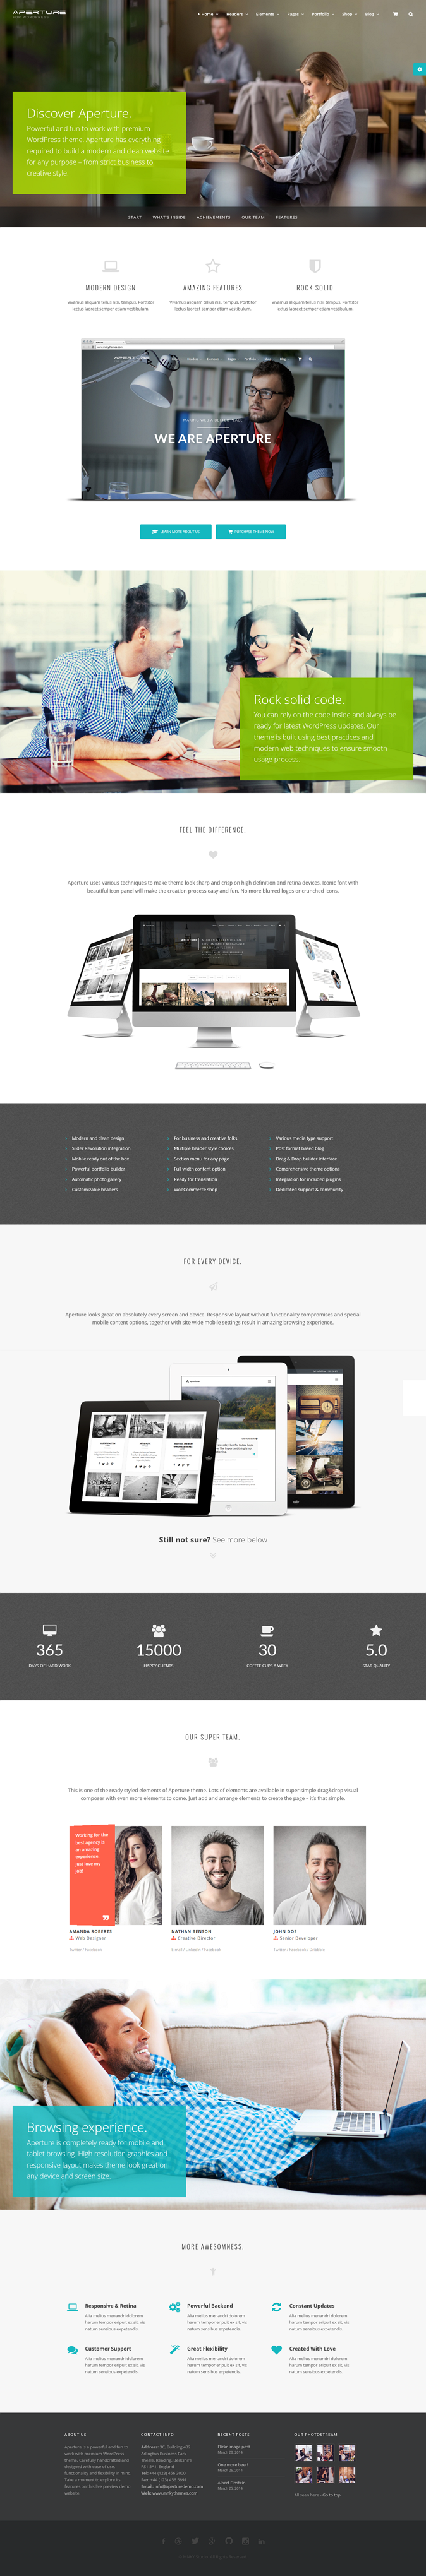 Aperture is a full featured WordPress Theme to build a modern and clean website for any purpose  ...